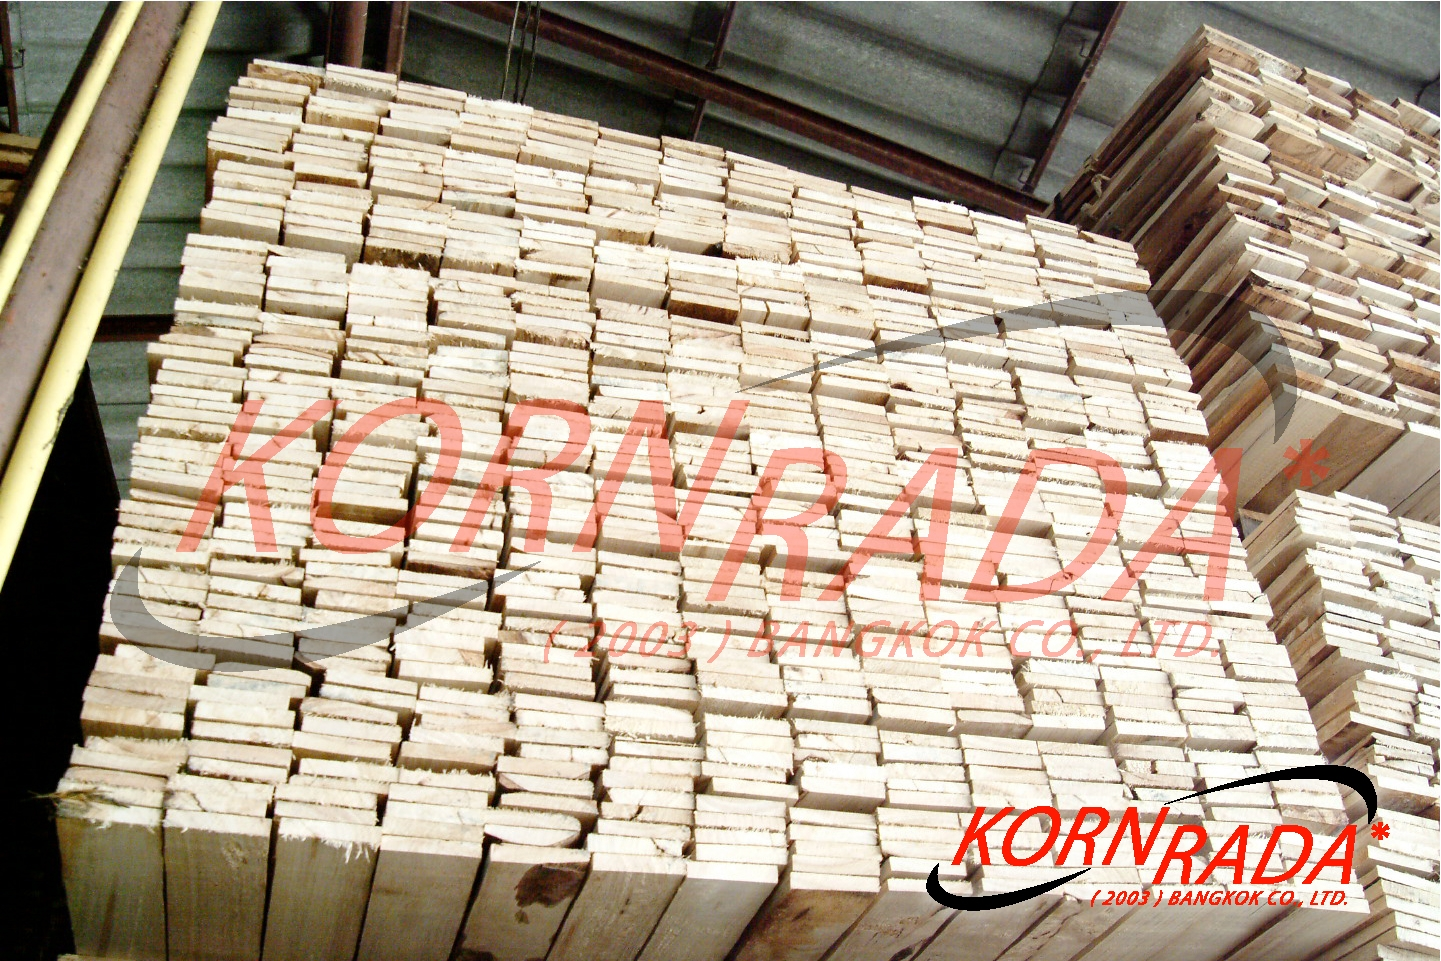 kornrada_products_1689